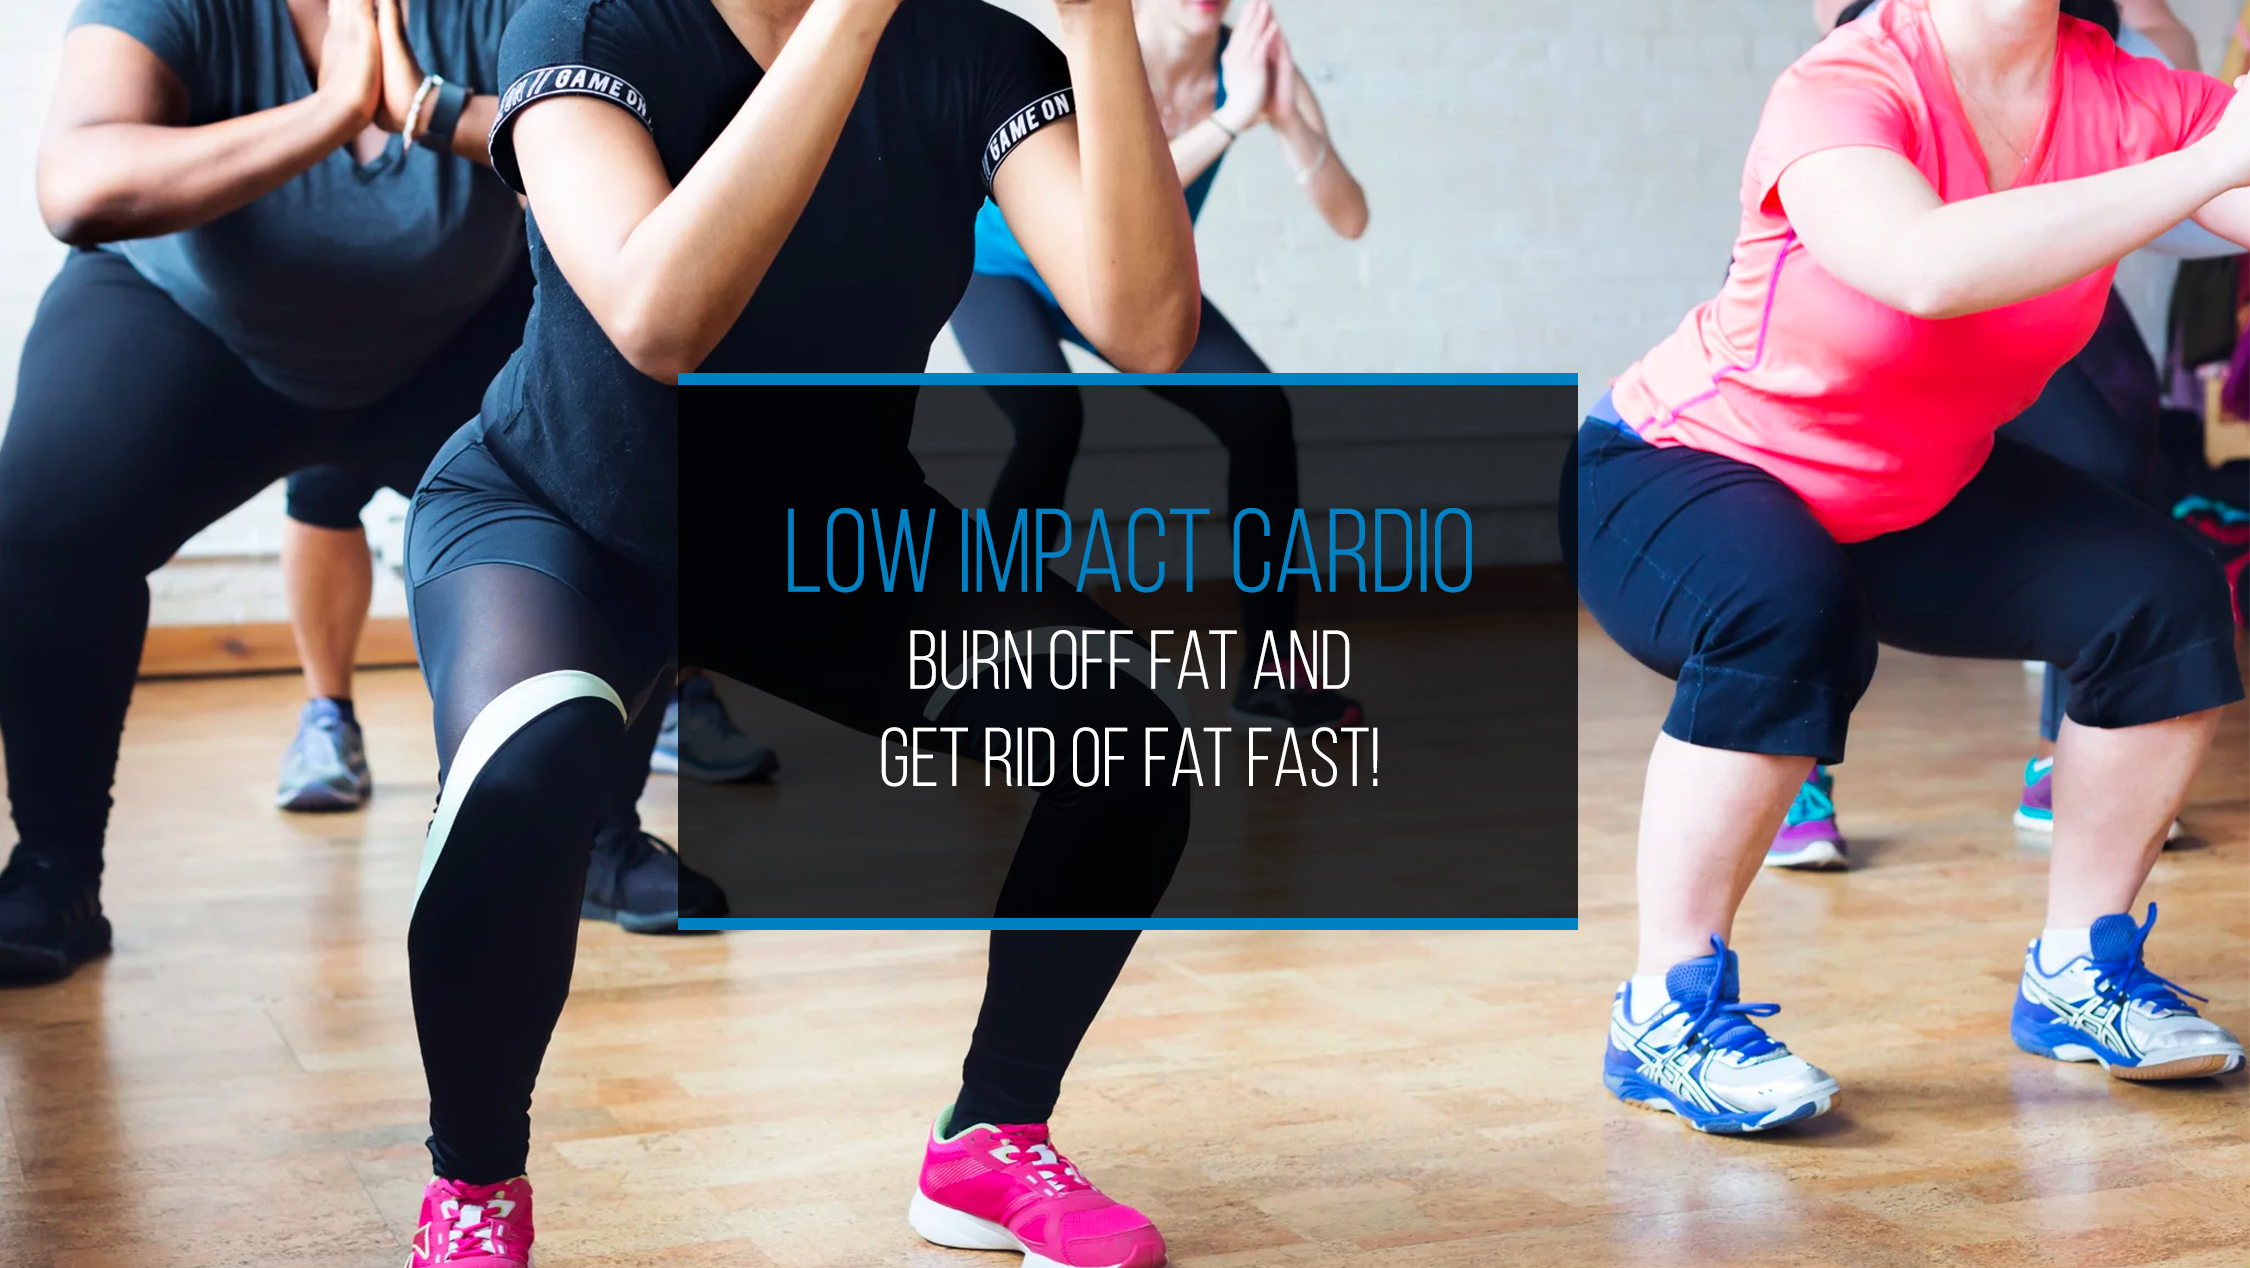 Low Impact Cardio - Burn Off Fat And Get Rid Of Fat Fast - WP